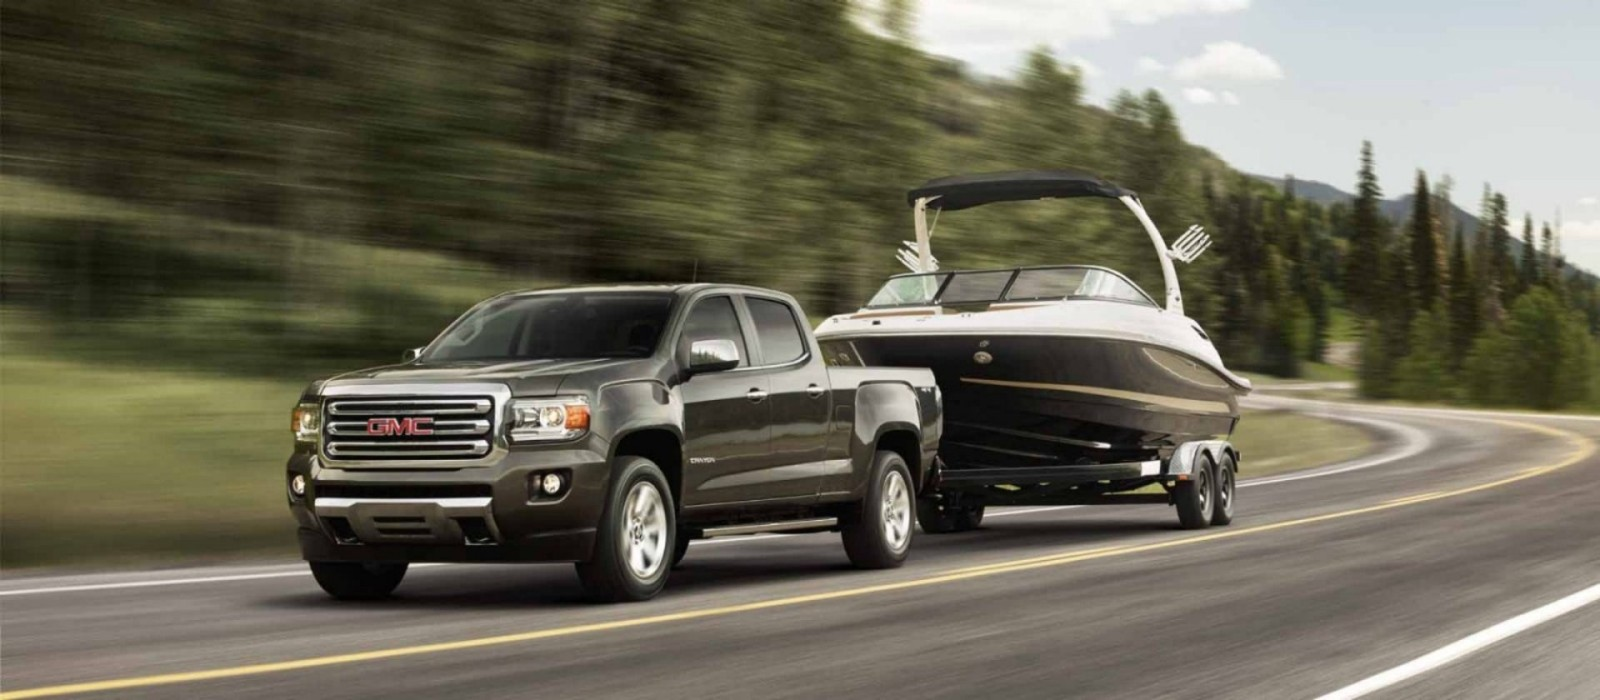 sierra pricing sale ia for width dodge gmc fort img near new details incentives slt height